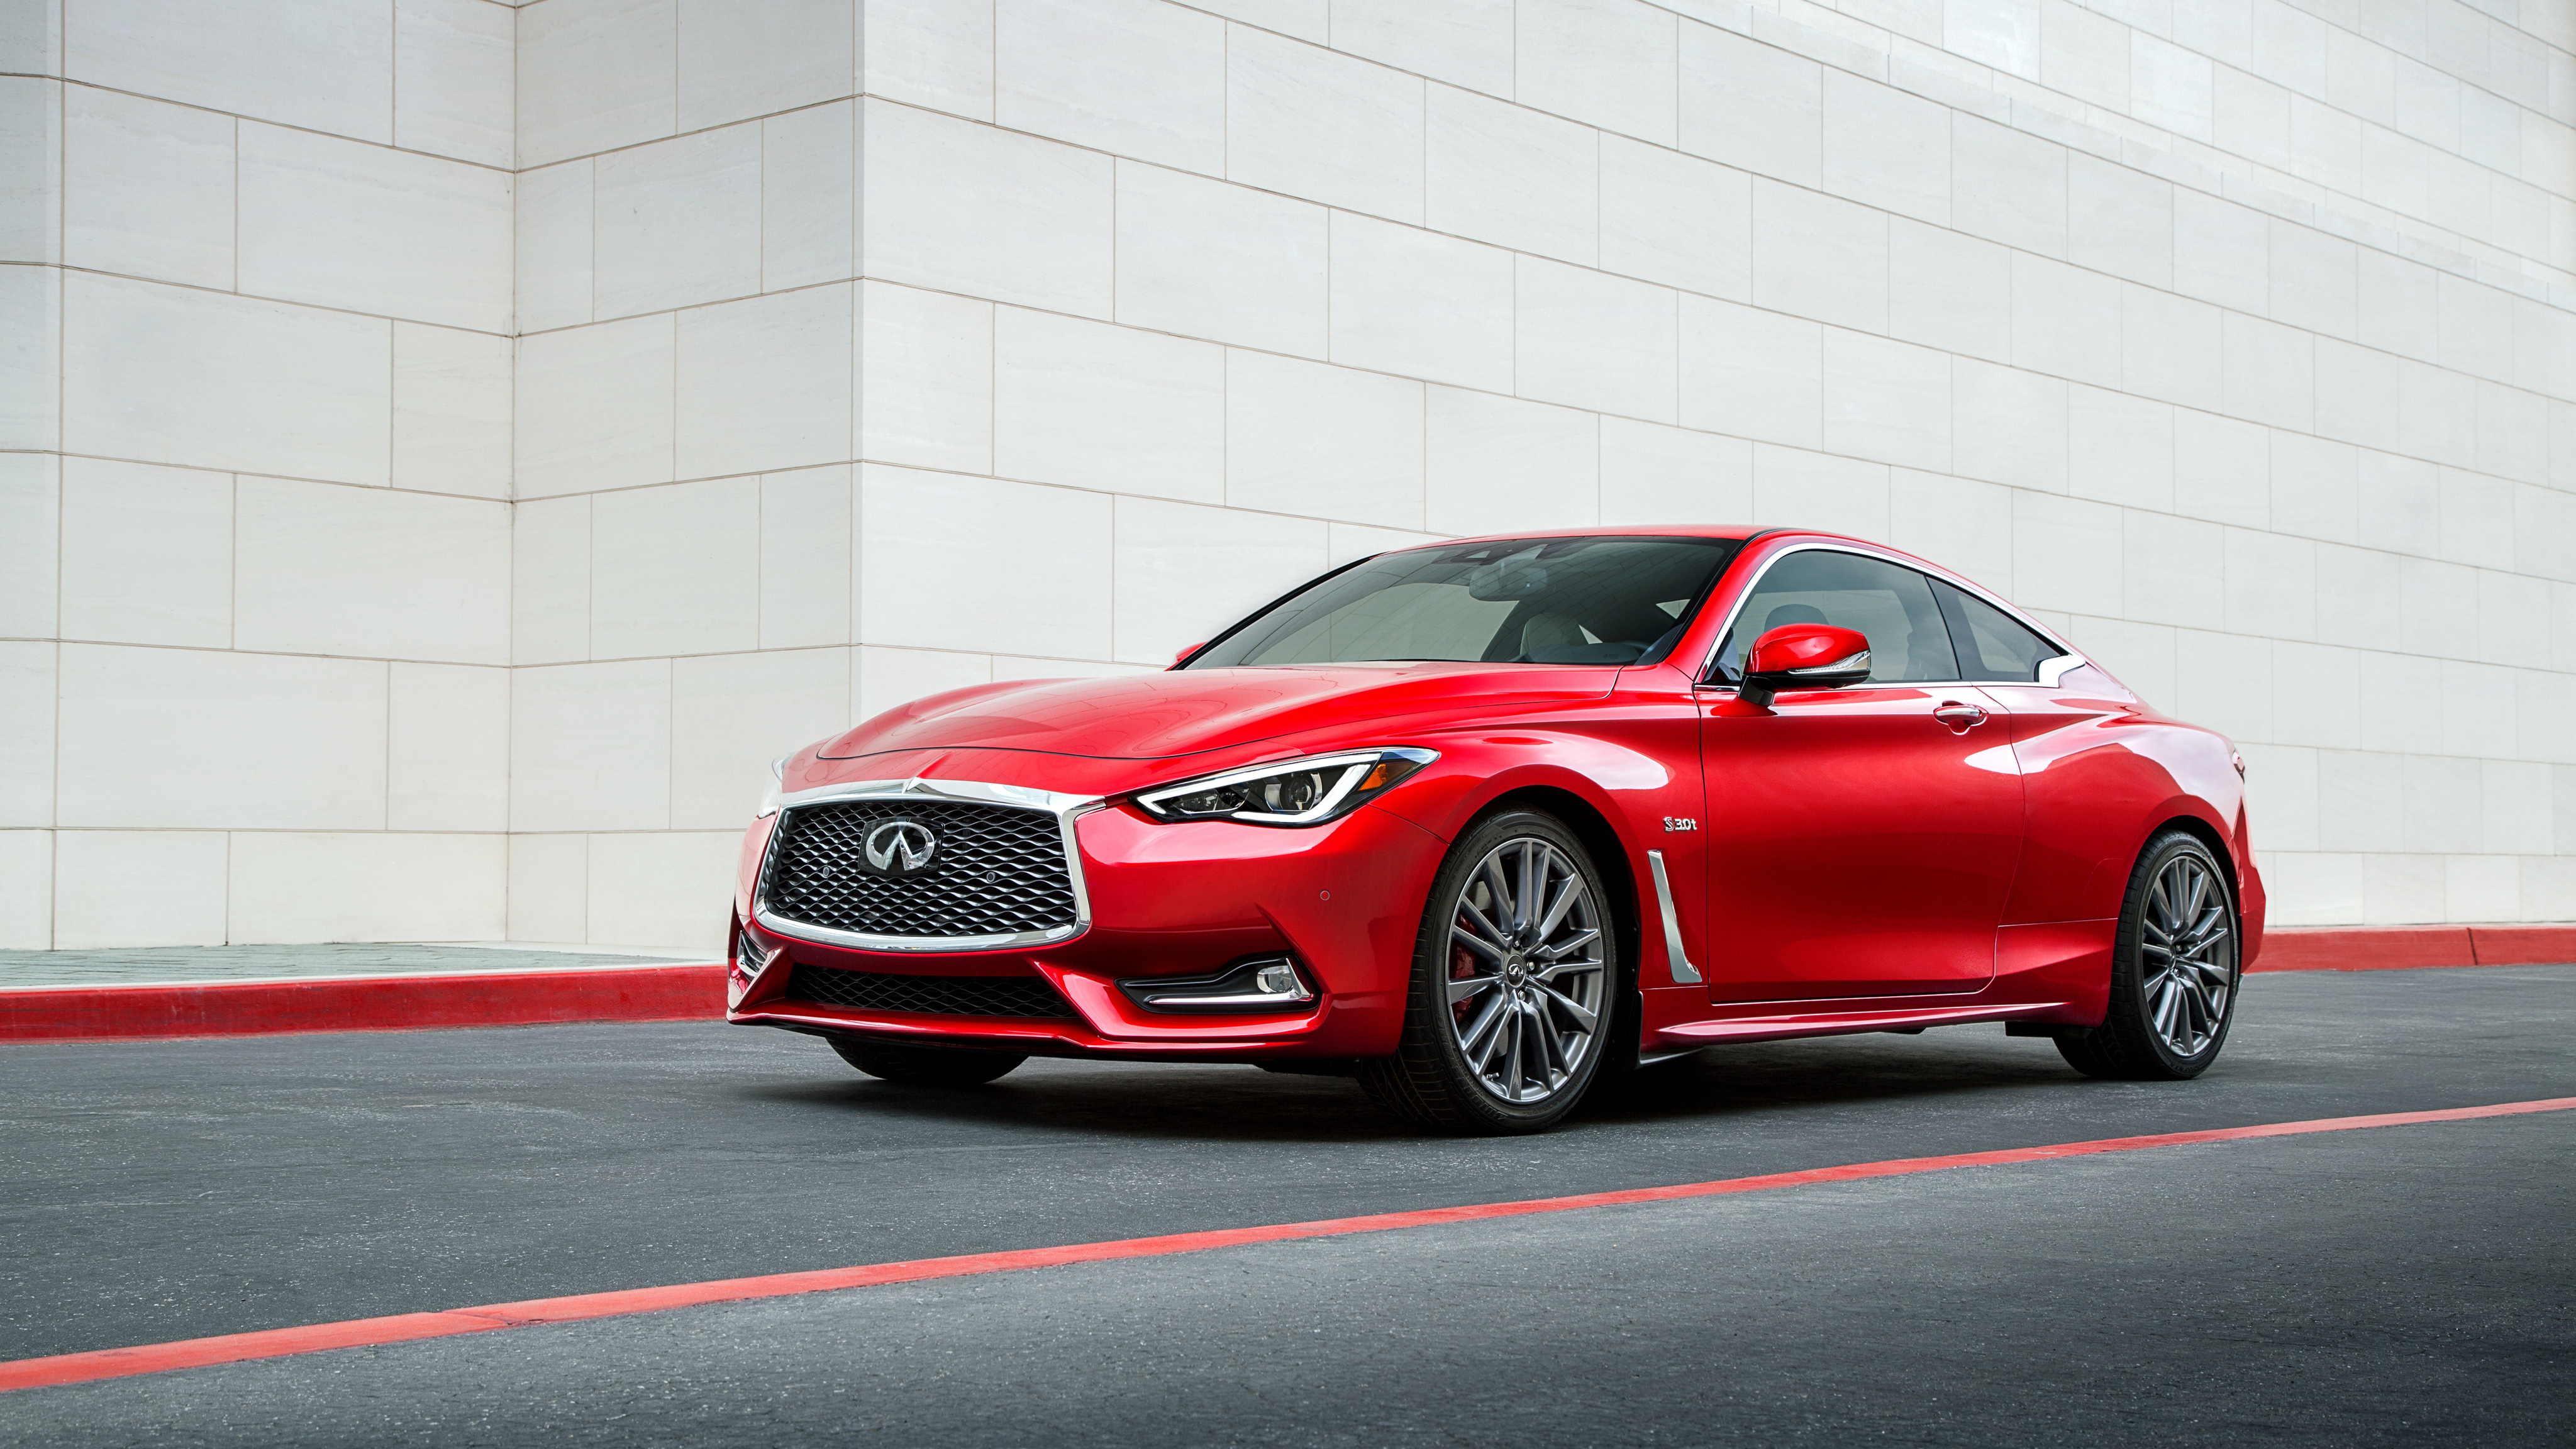 Infiniti Q60 Wallpapers and Background Images   stmednet 4096x2304